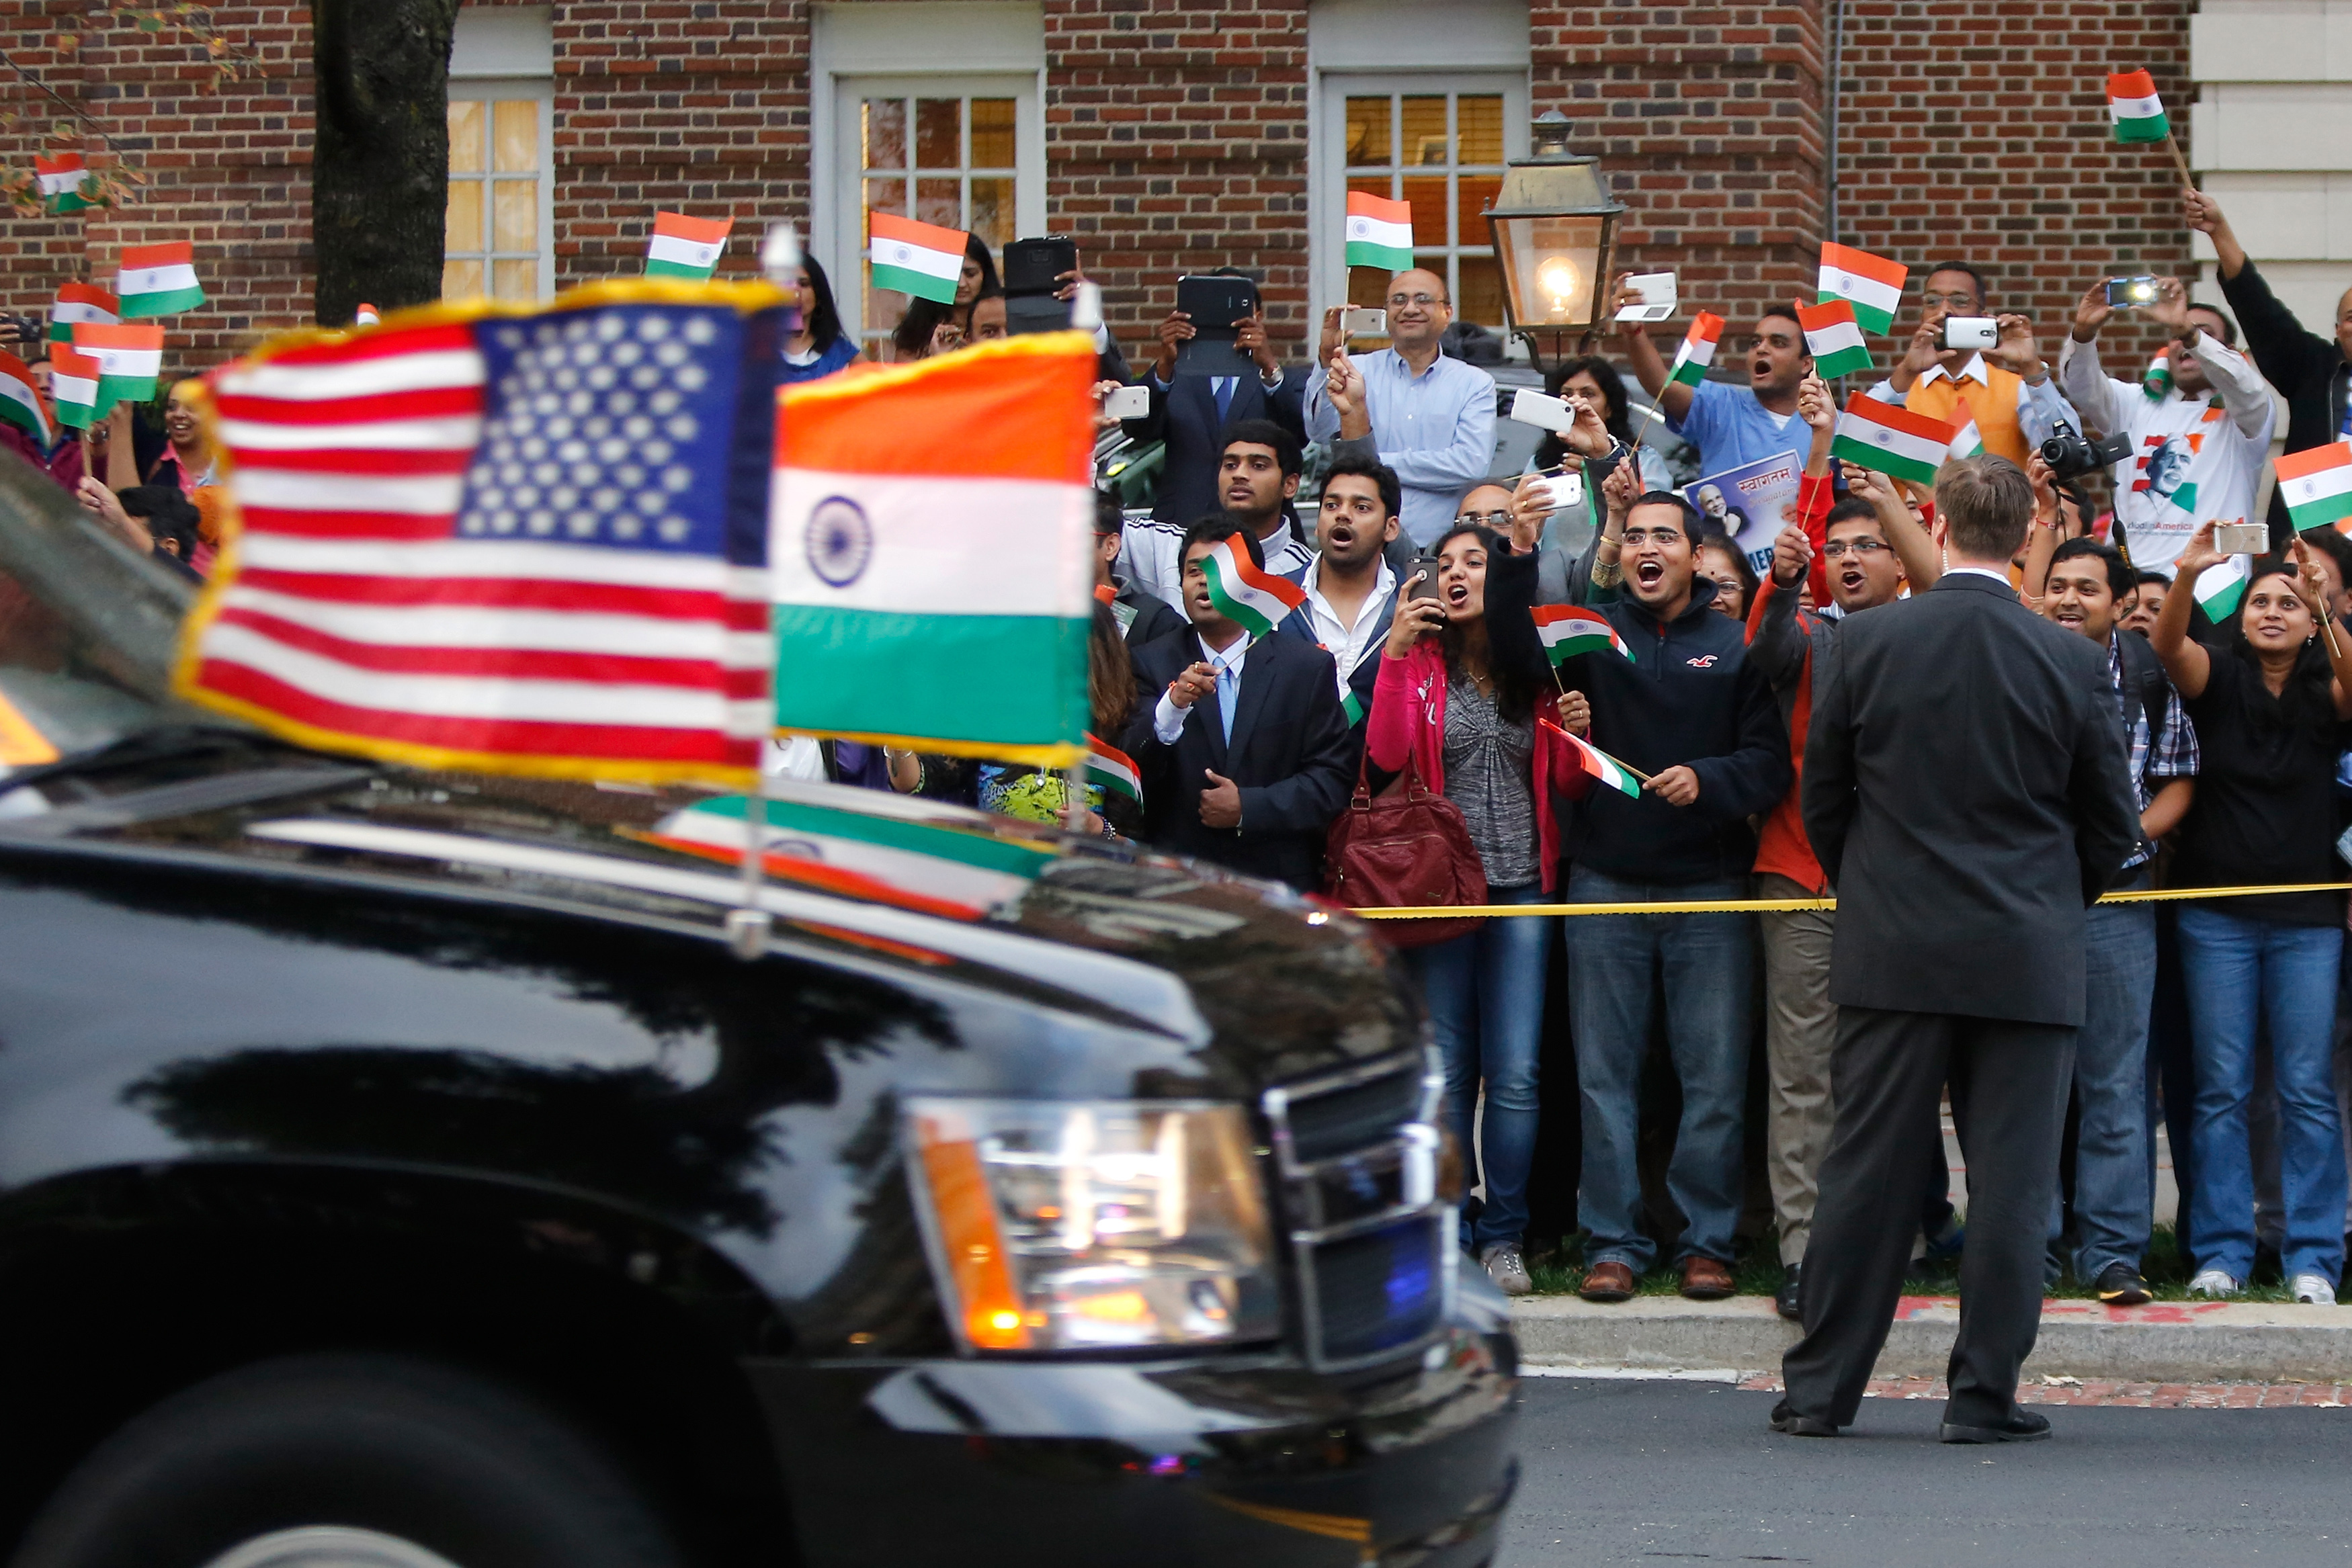 www.brookings.edu: Democracy and the US-India relationship